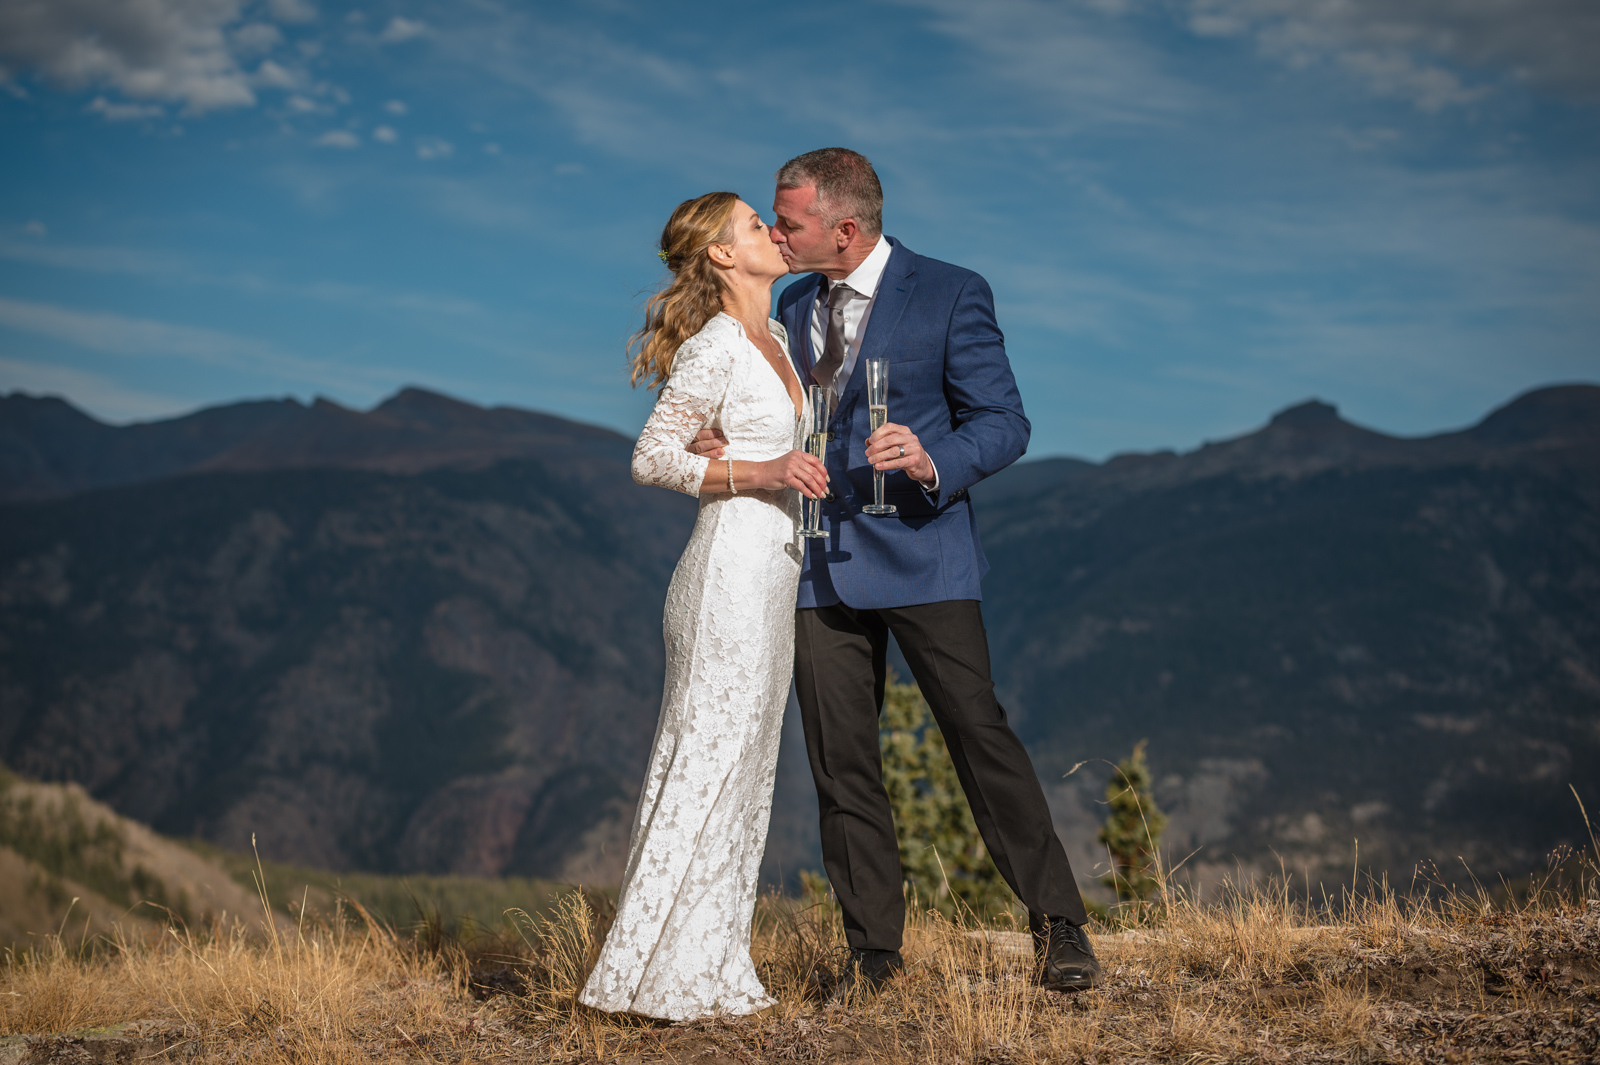 Kelly & Jed's Colorado Mountain Elopement